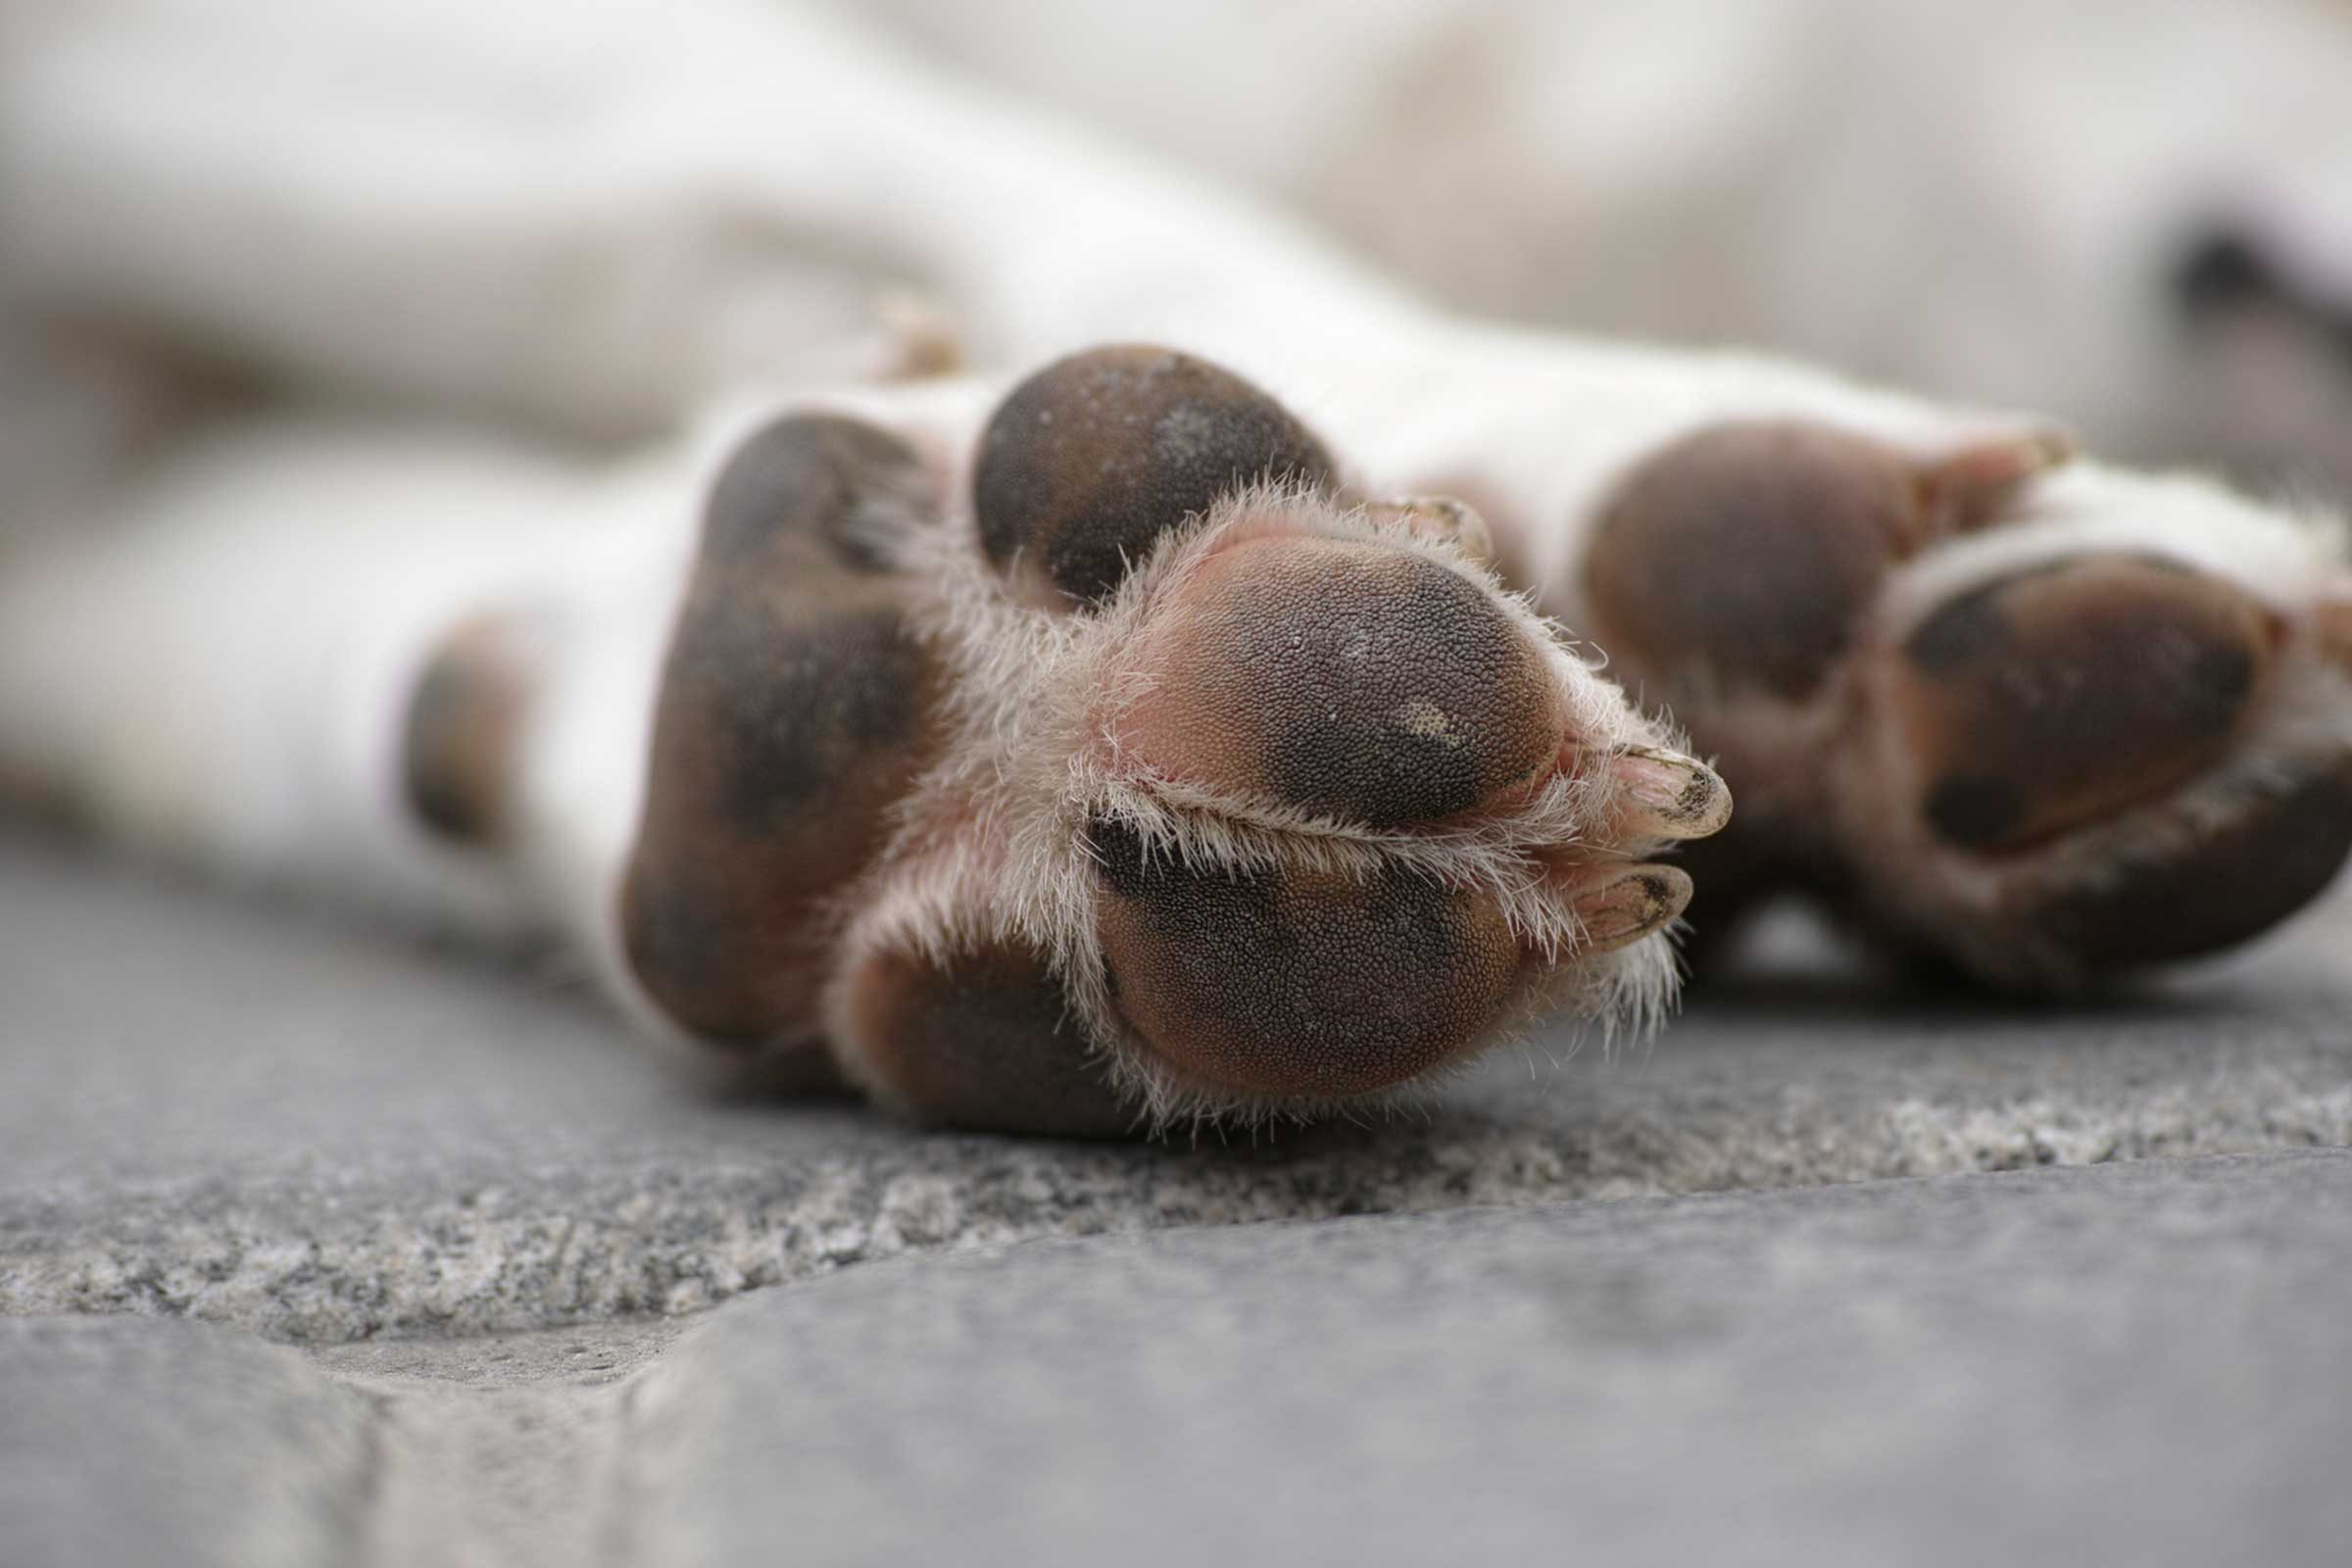 Your dog's feet might smell like corn.